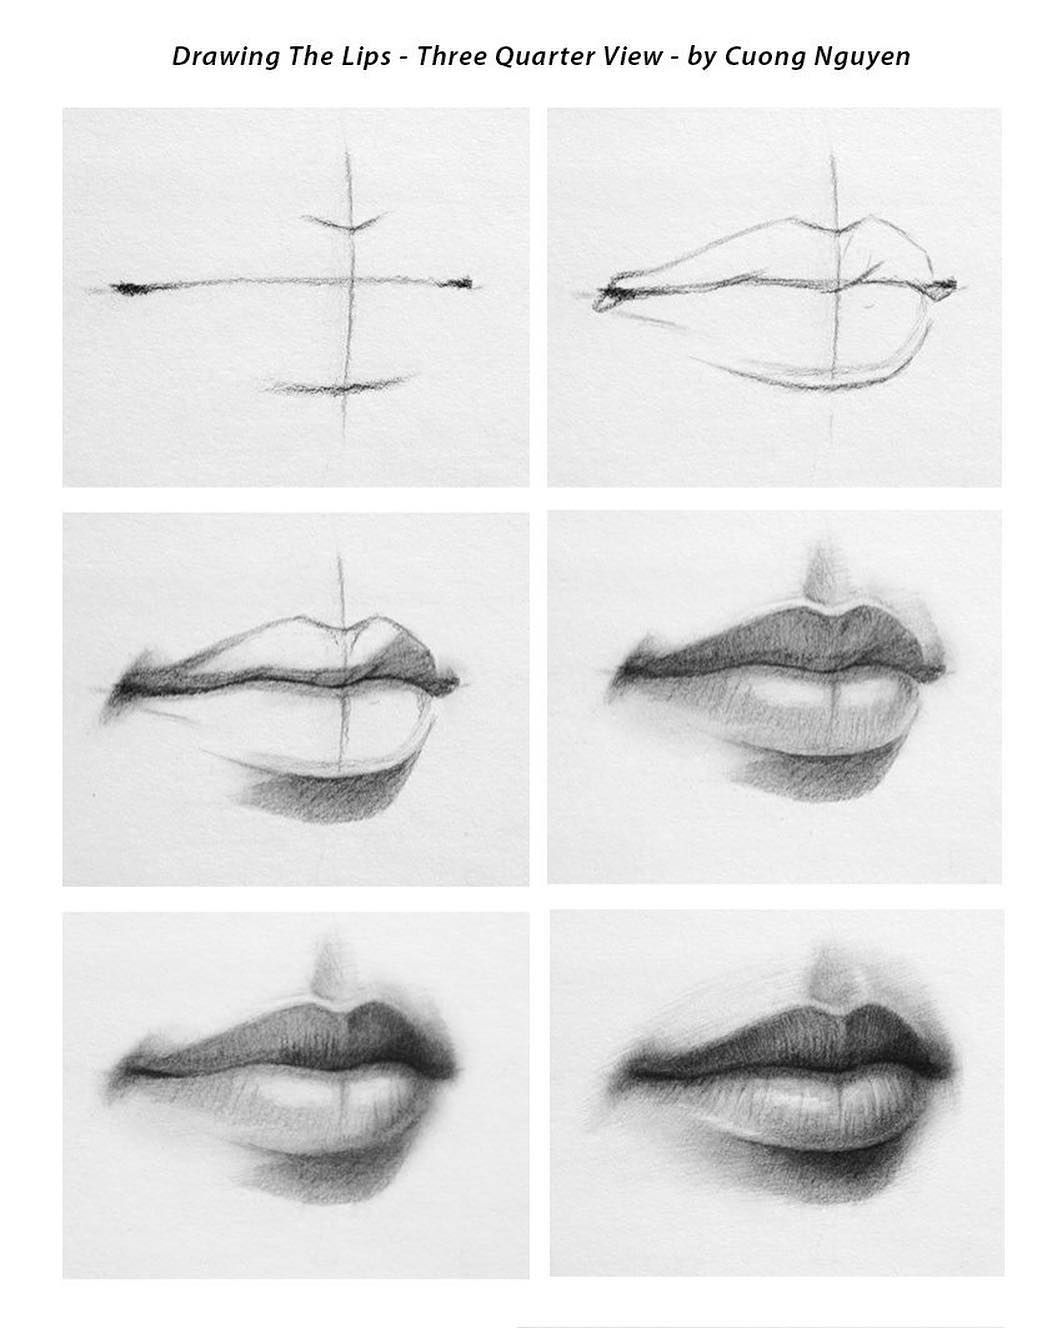 How To Draw Lips In Three Quarter View Drawing Classicaldrawing